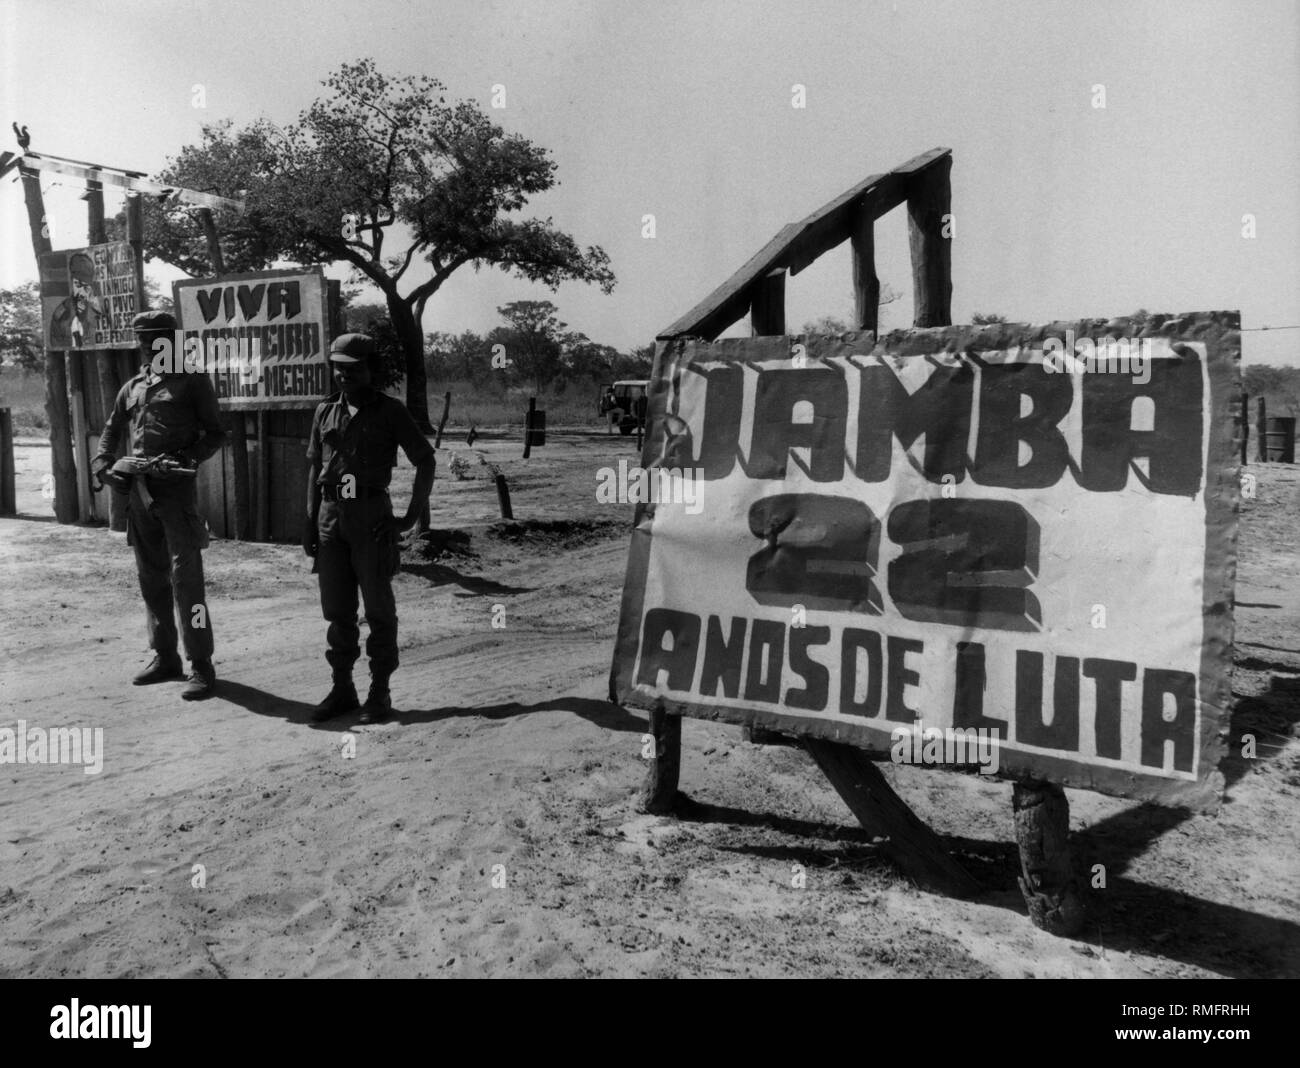 Armed UNITA guerrilla soldiers guard the entrance to their Jamba camp. On the left is a sign that points to the 22 years of civil war in Angola. - Stock Image